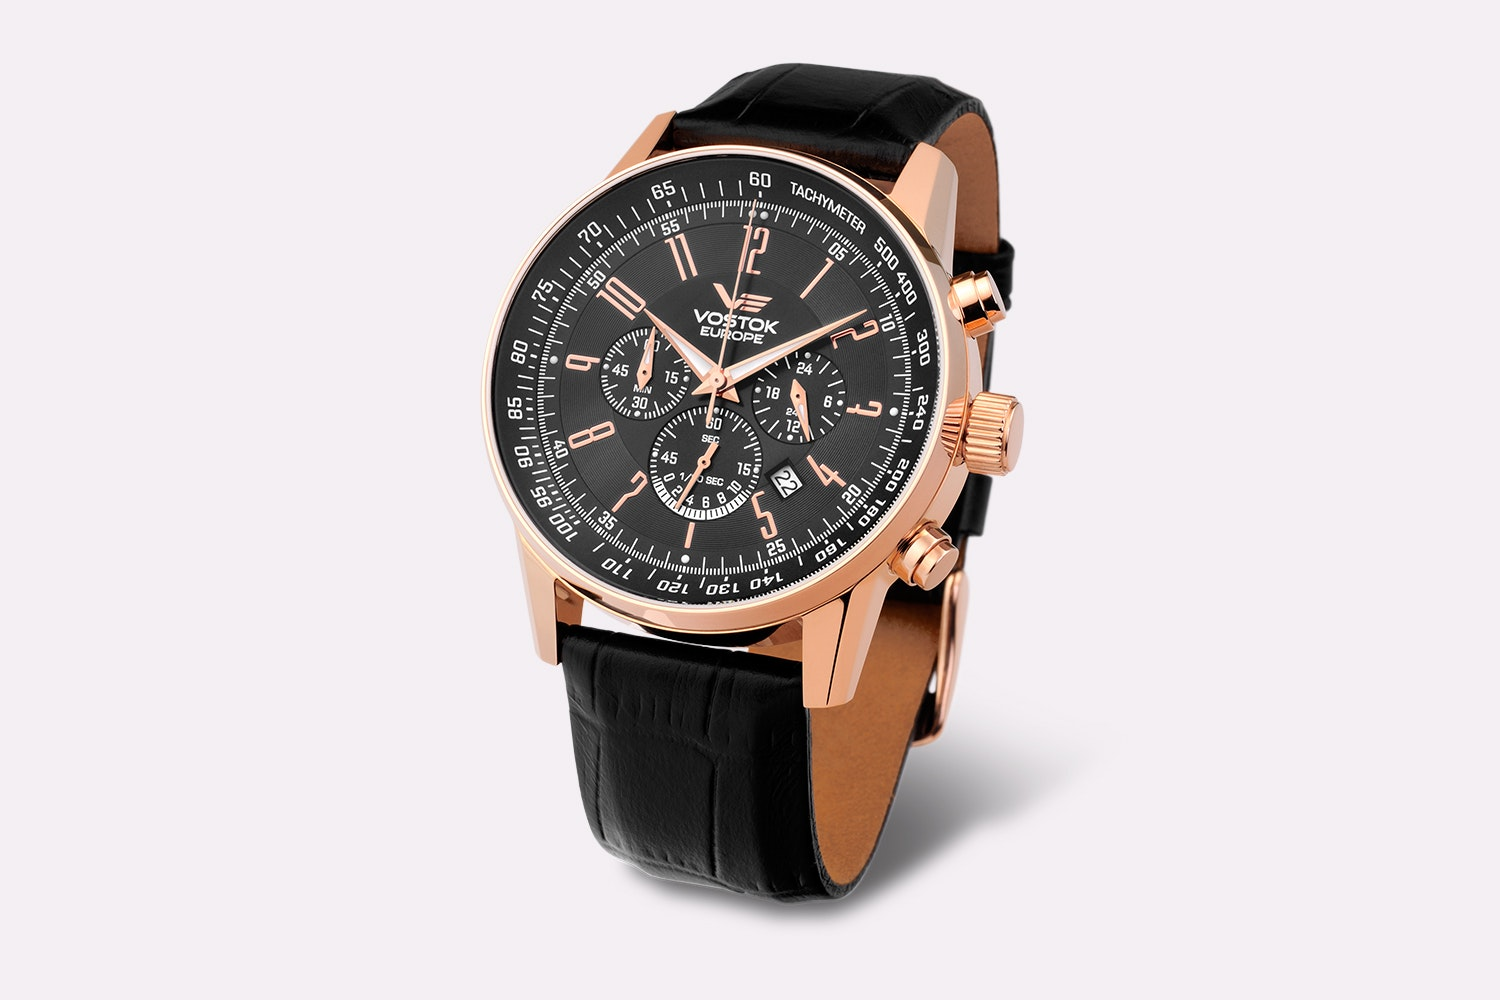 OS22-5619133 | Rose Gold Case, Black Dial, Black Leather Strap